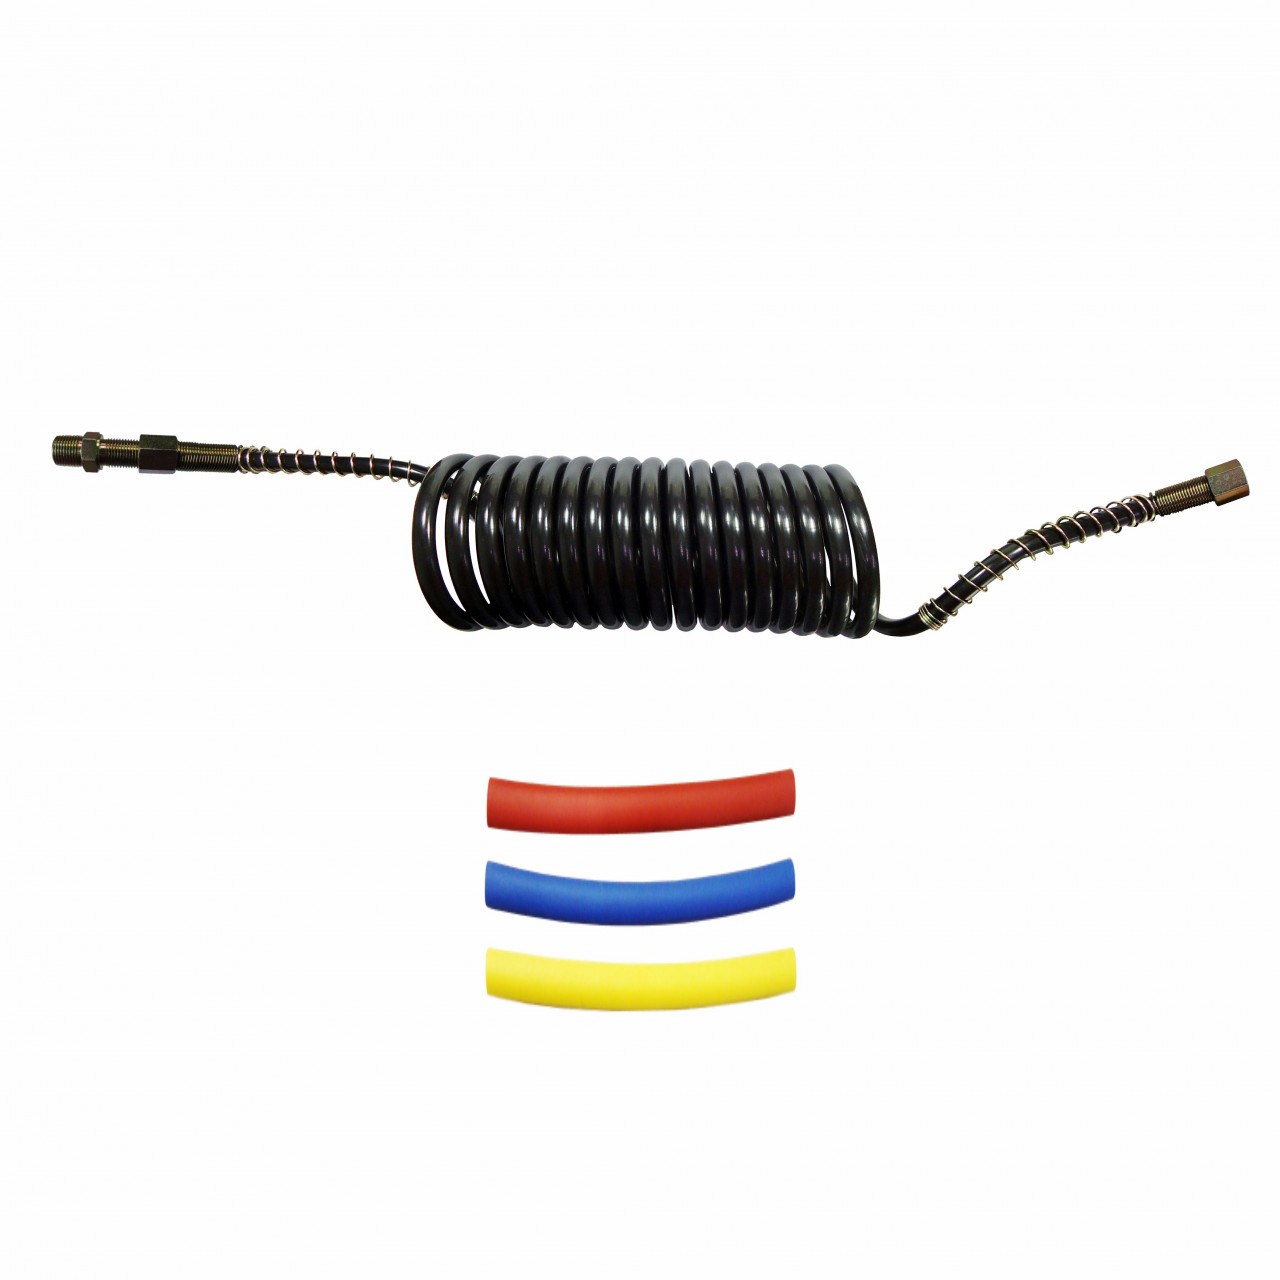 DNI8444 – Spiral Hose for Air Brake 6.5m Male 3/8 x Female M16 with Niple Kit Heat–Retractable Colors